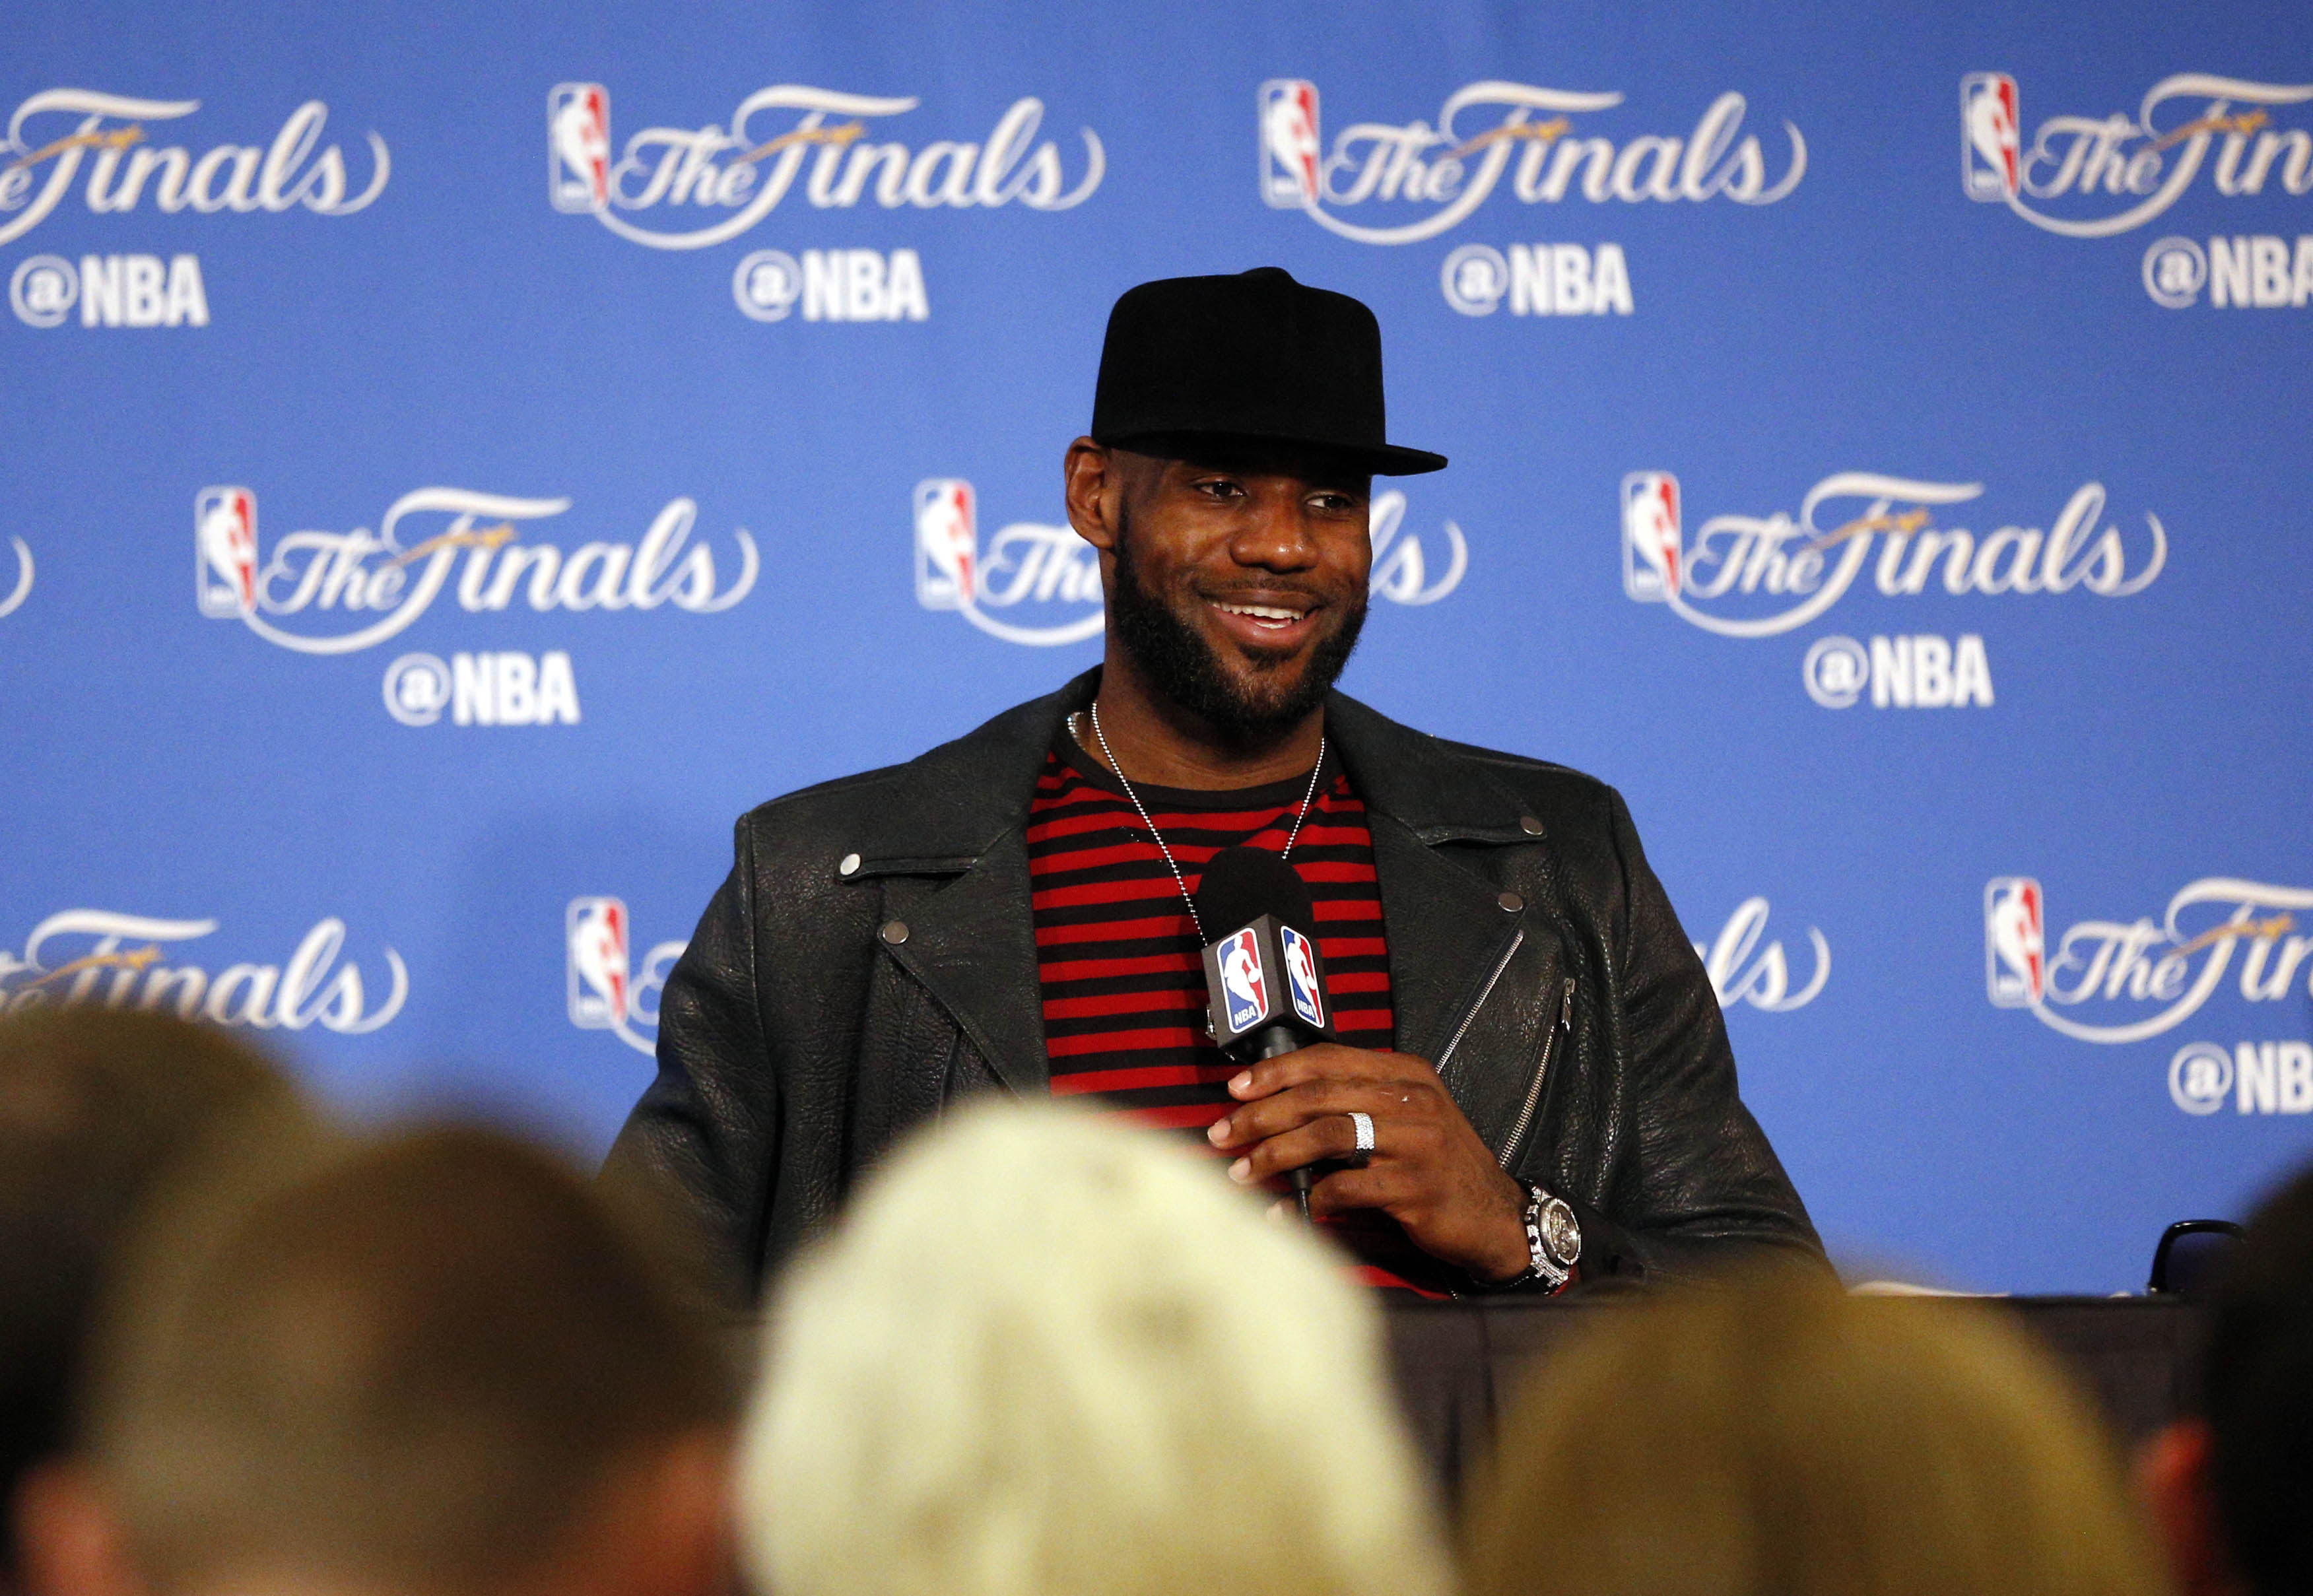 LeBron James 'likely' to join the Lakers or Clippers? It's too soon to buy into LeBron rumors